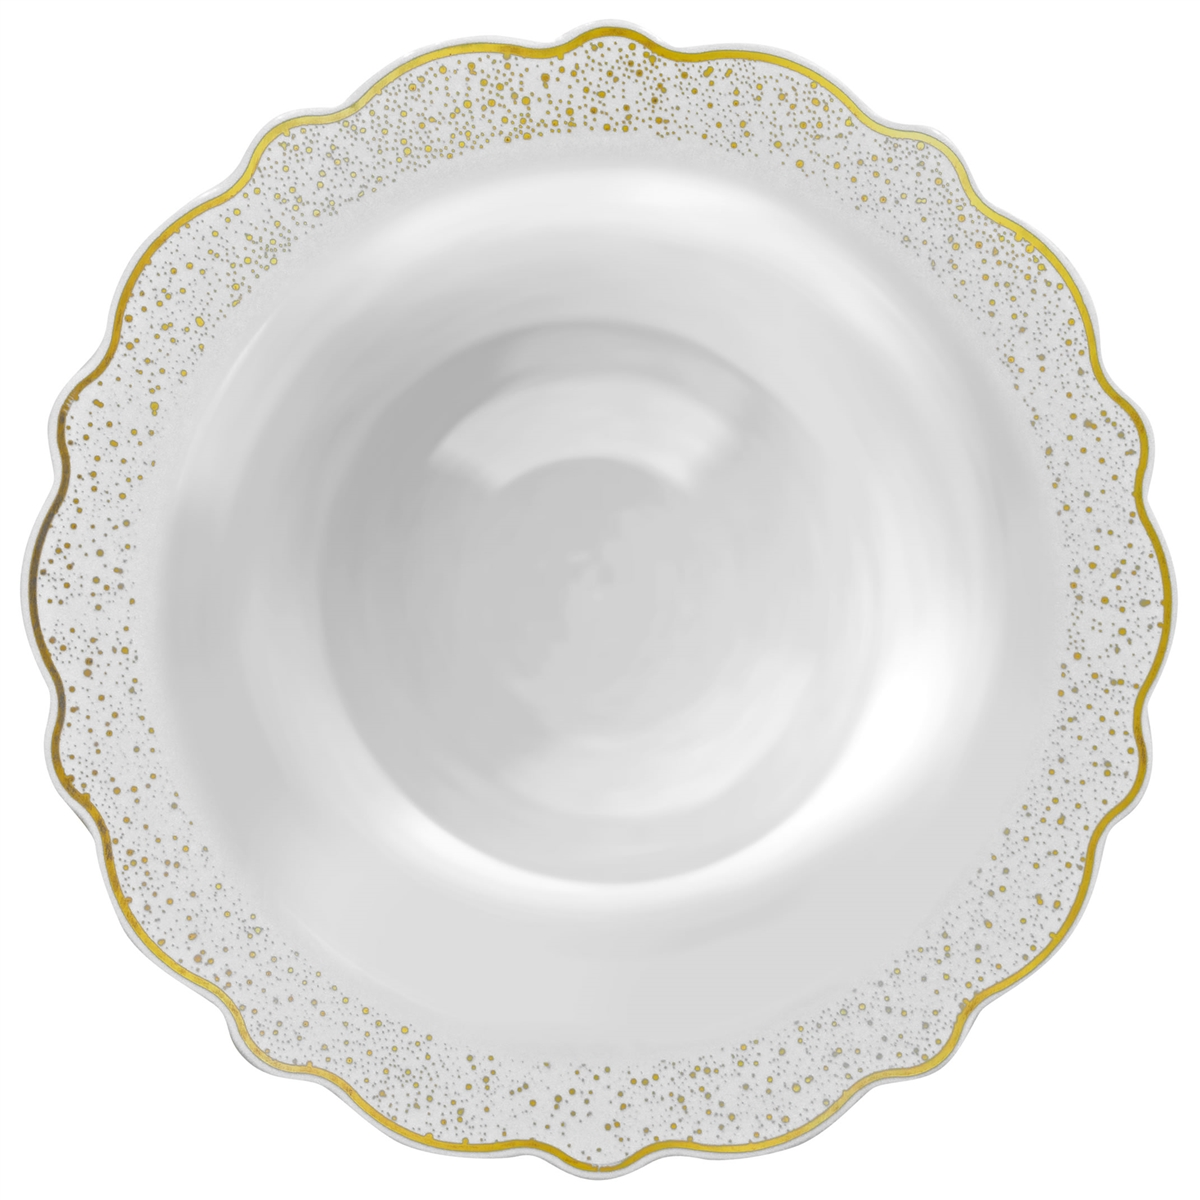 Baroque Collection 12oz Soup Salad Bowls White With Silver Trim